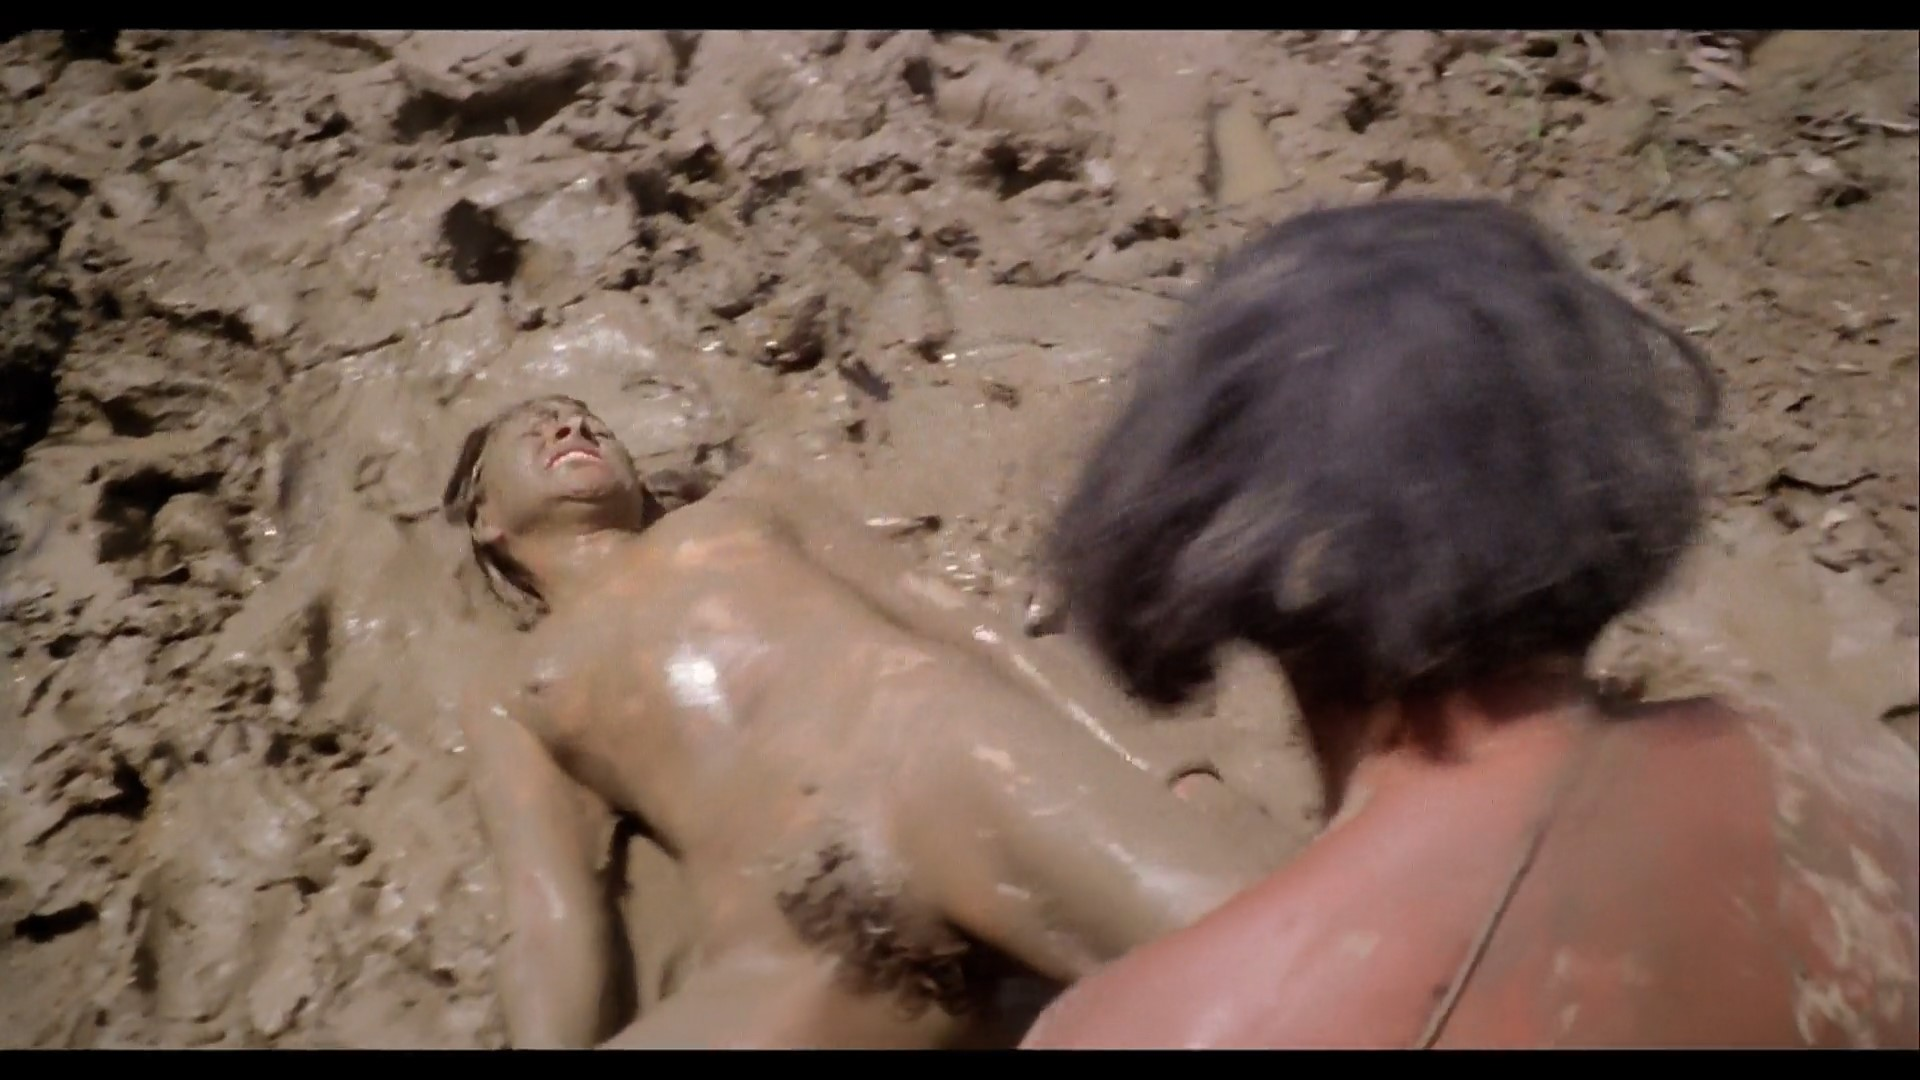 naked Cannibal holocaust